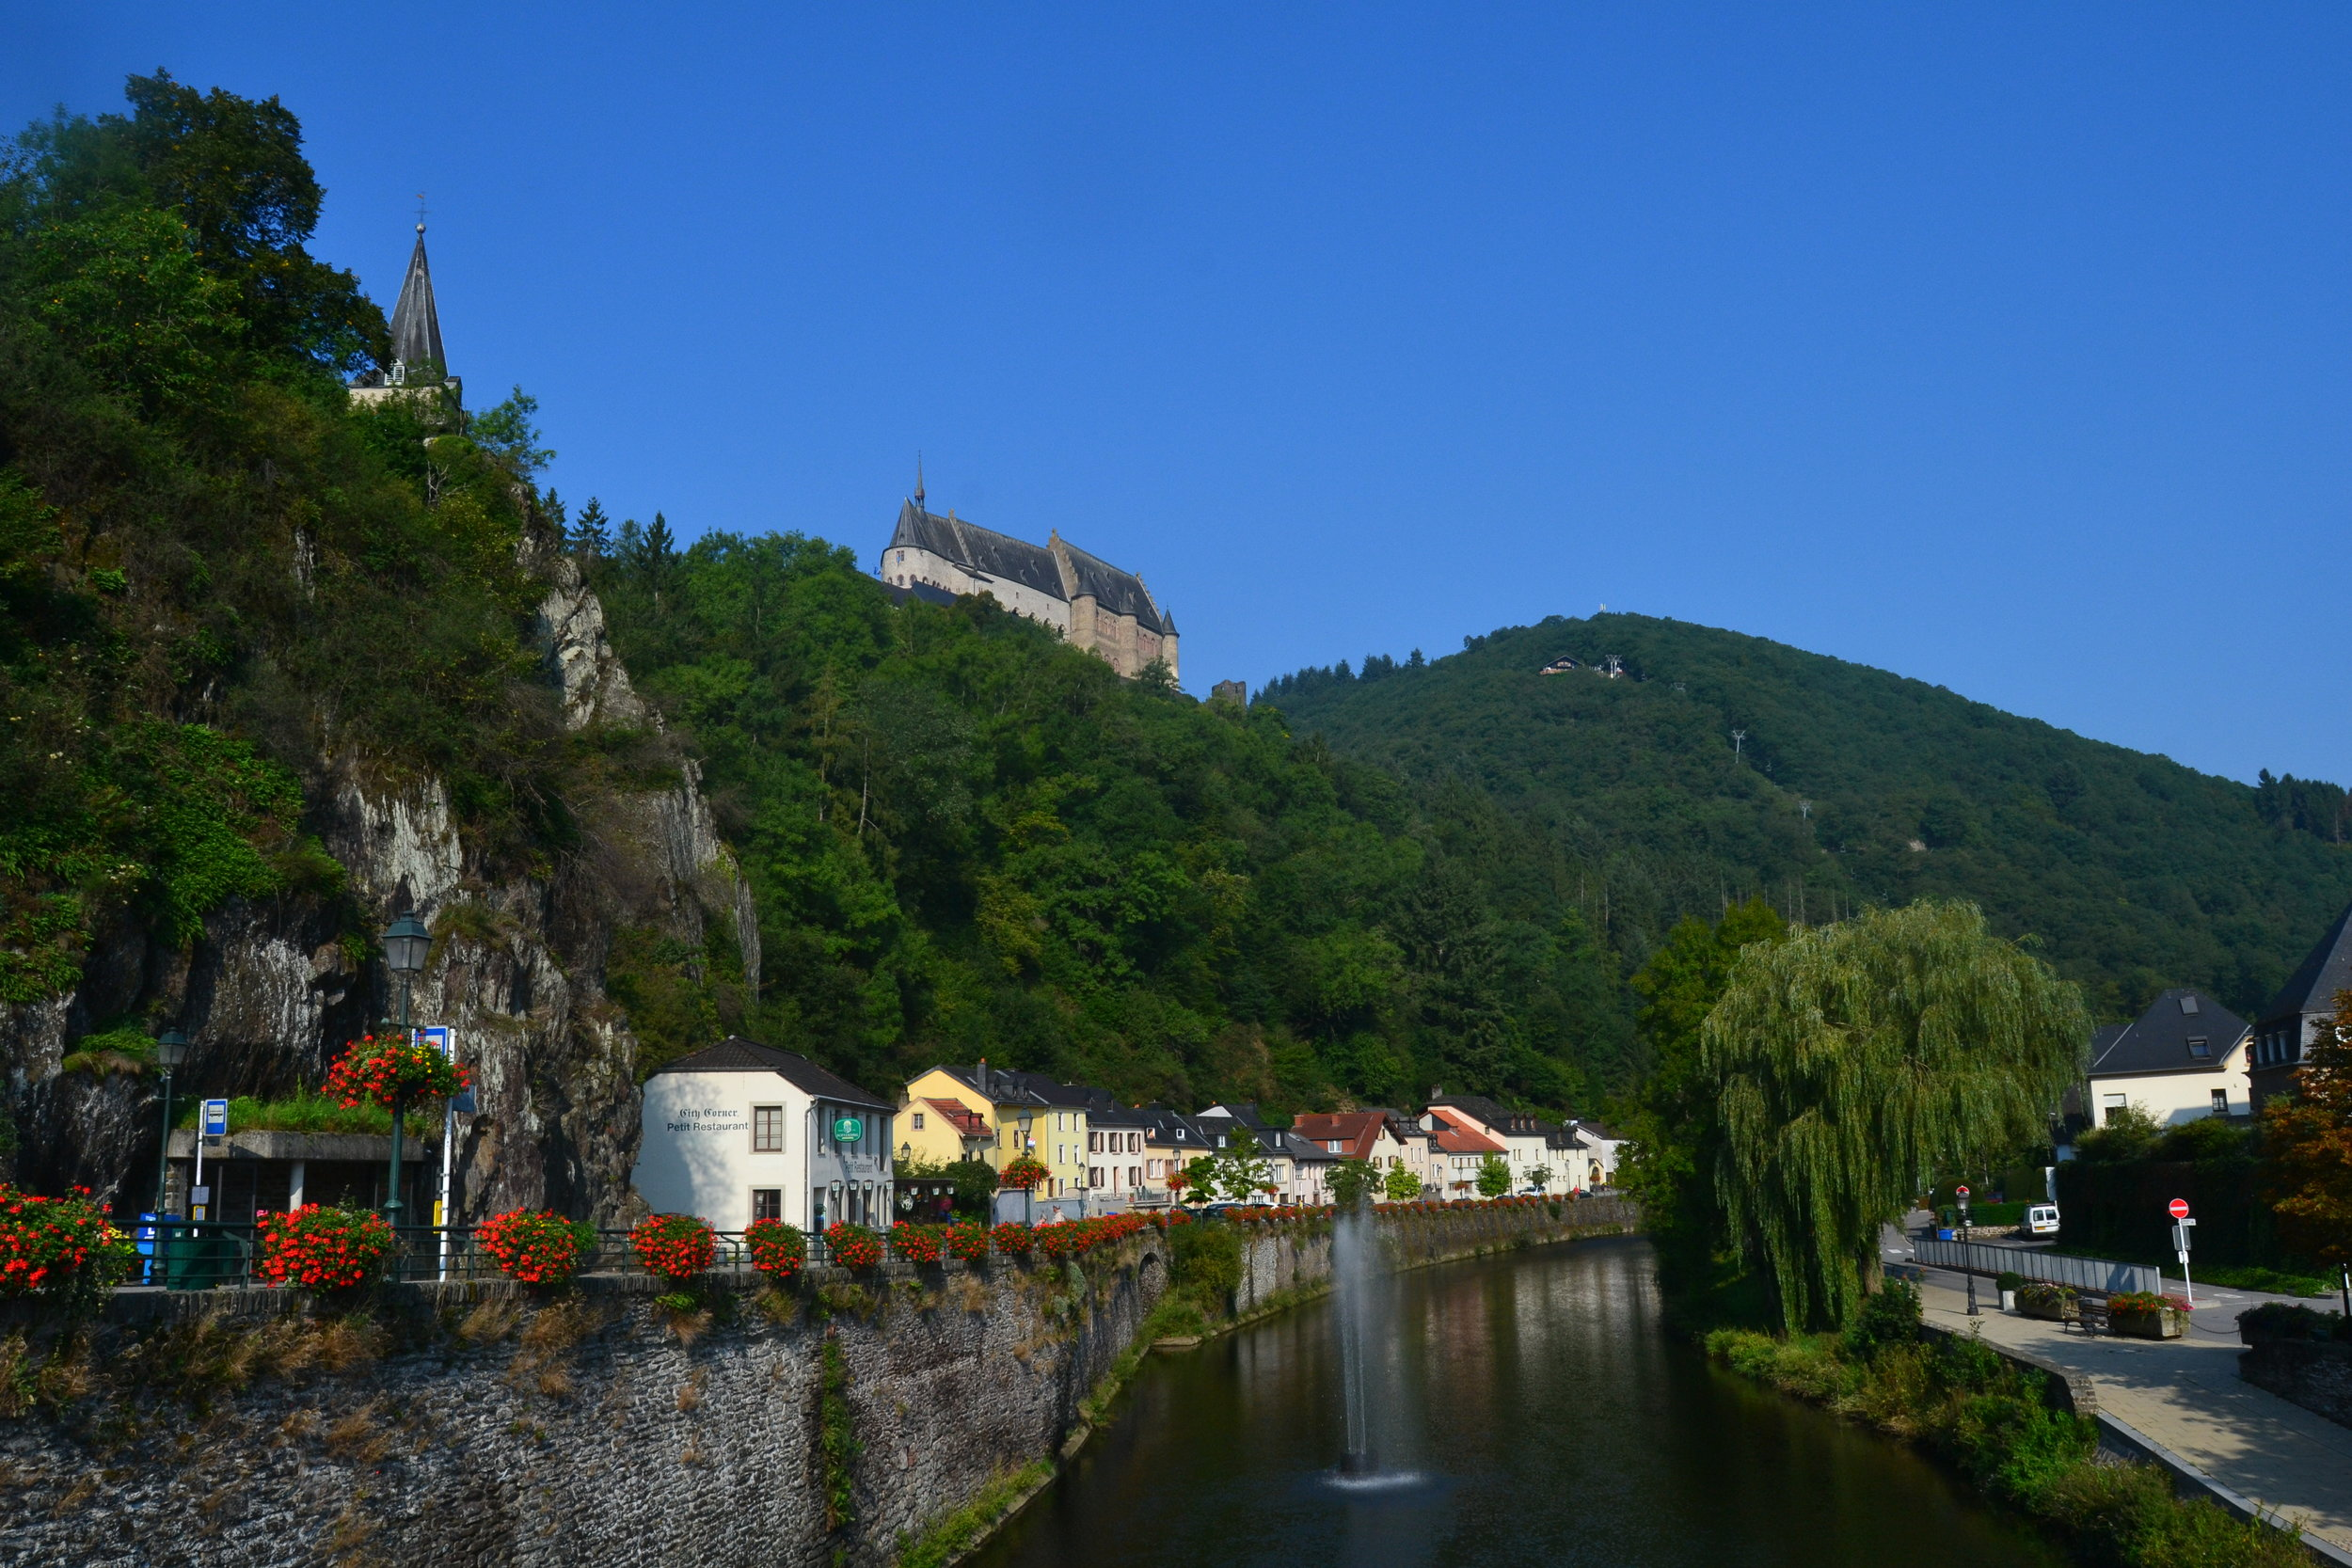 View of Vianden from the bridge in the center of town